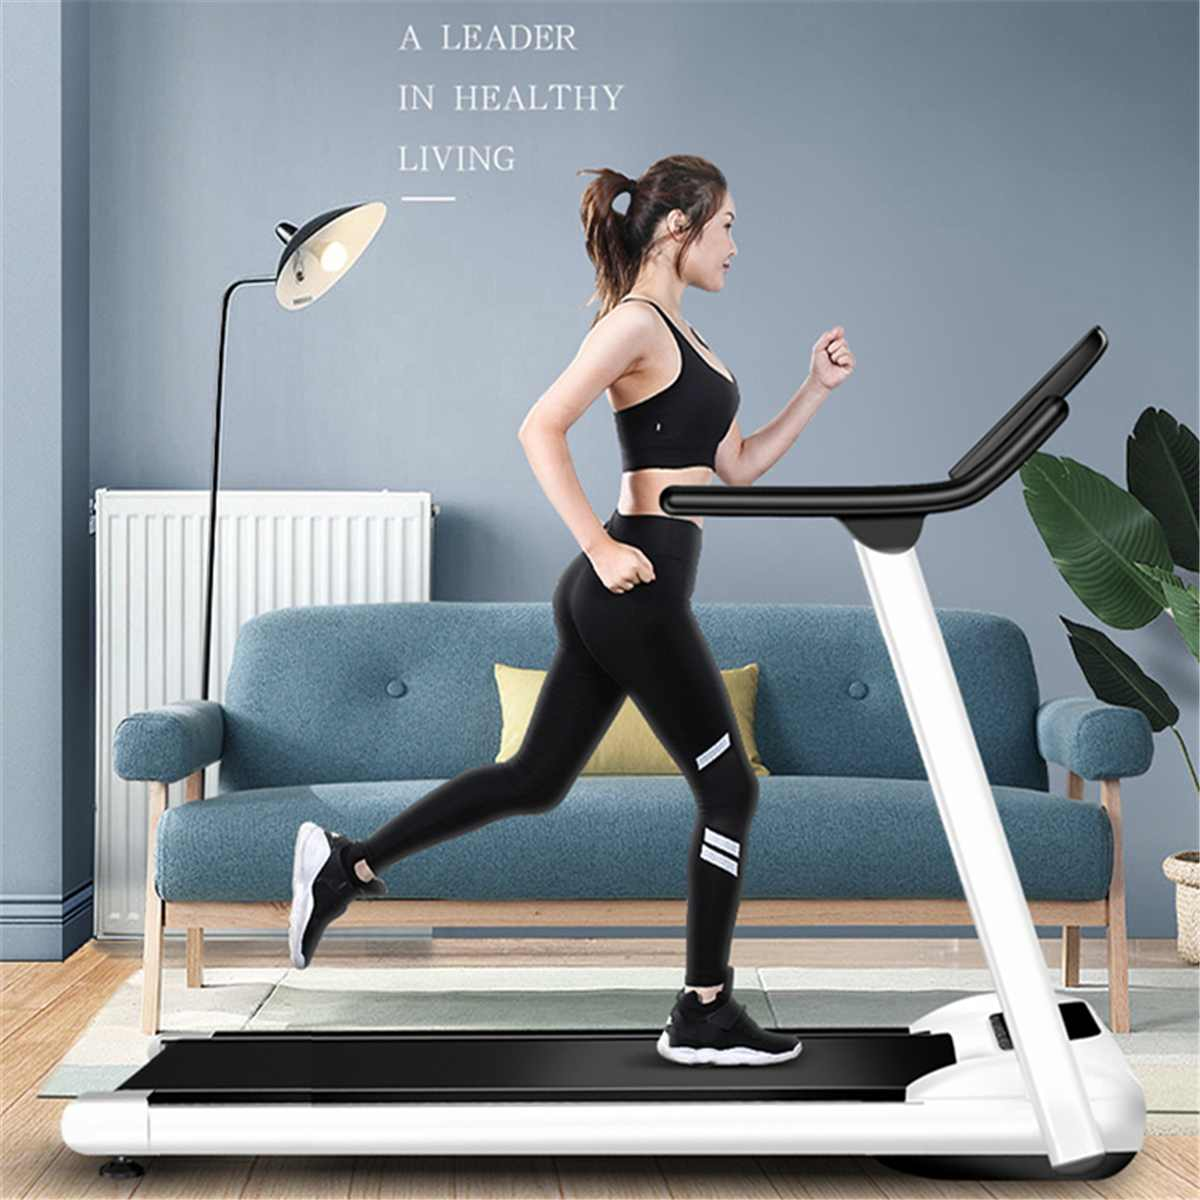 Folding Motorized Treadmill Portable Electric Treadmill Household Gym Treadmill Running Machine With LED Display Safe Bar